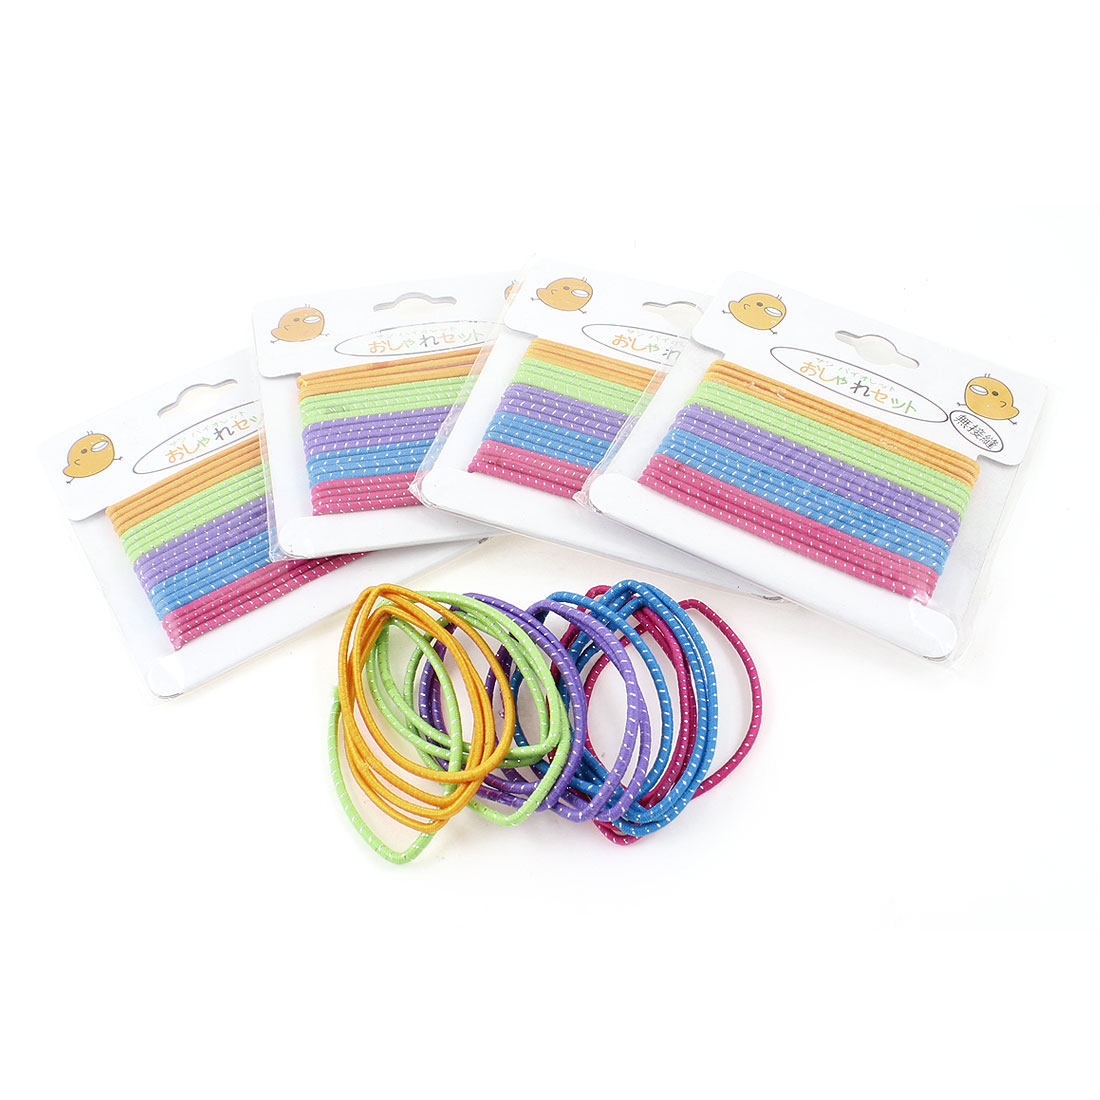 5 Packs Multicolored Elastic Band Ponytail Holder Hairband for Ladies